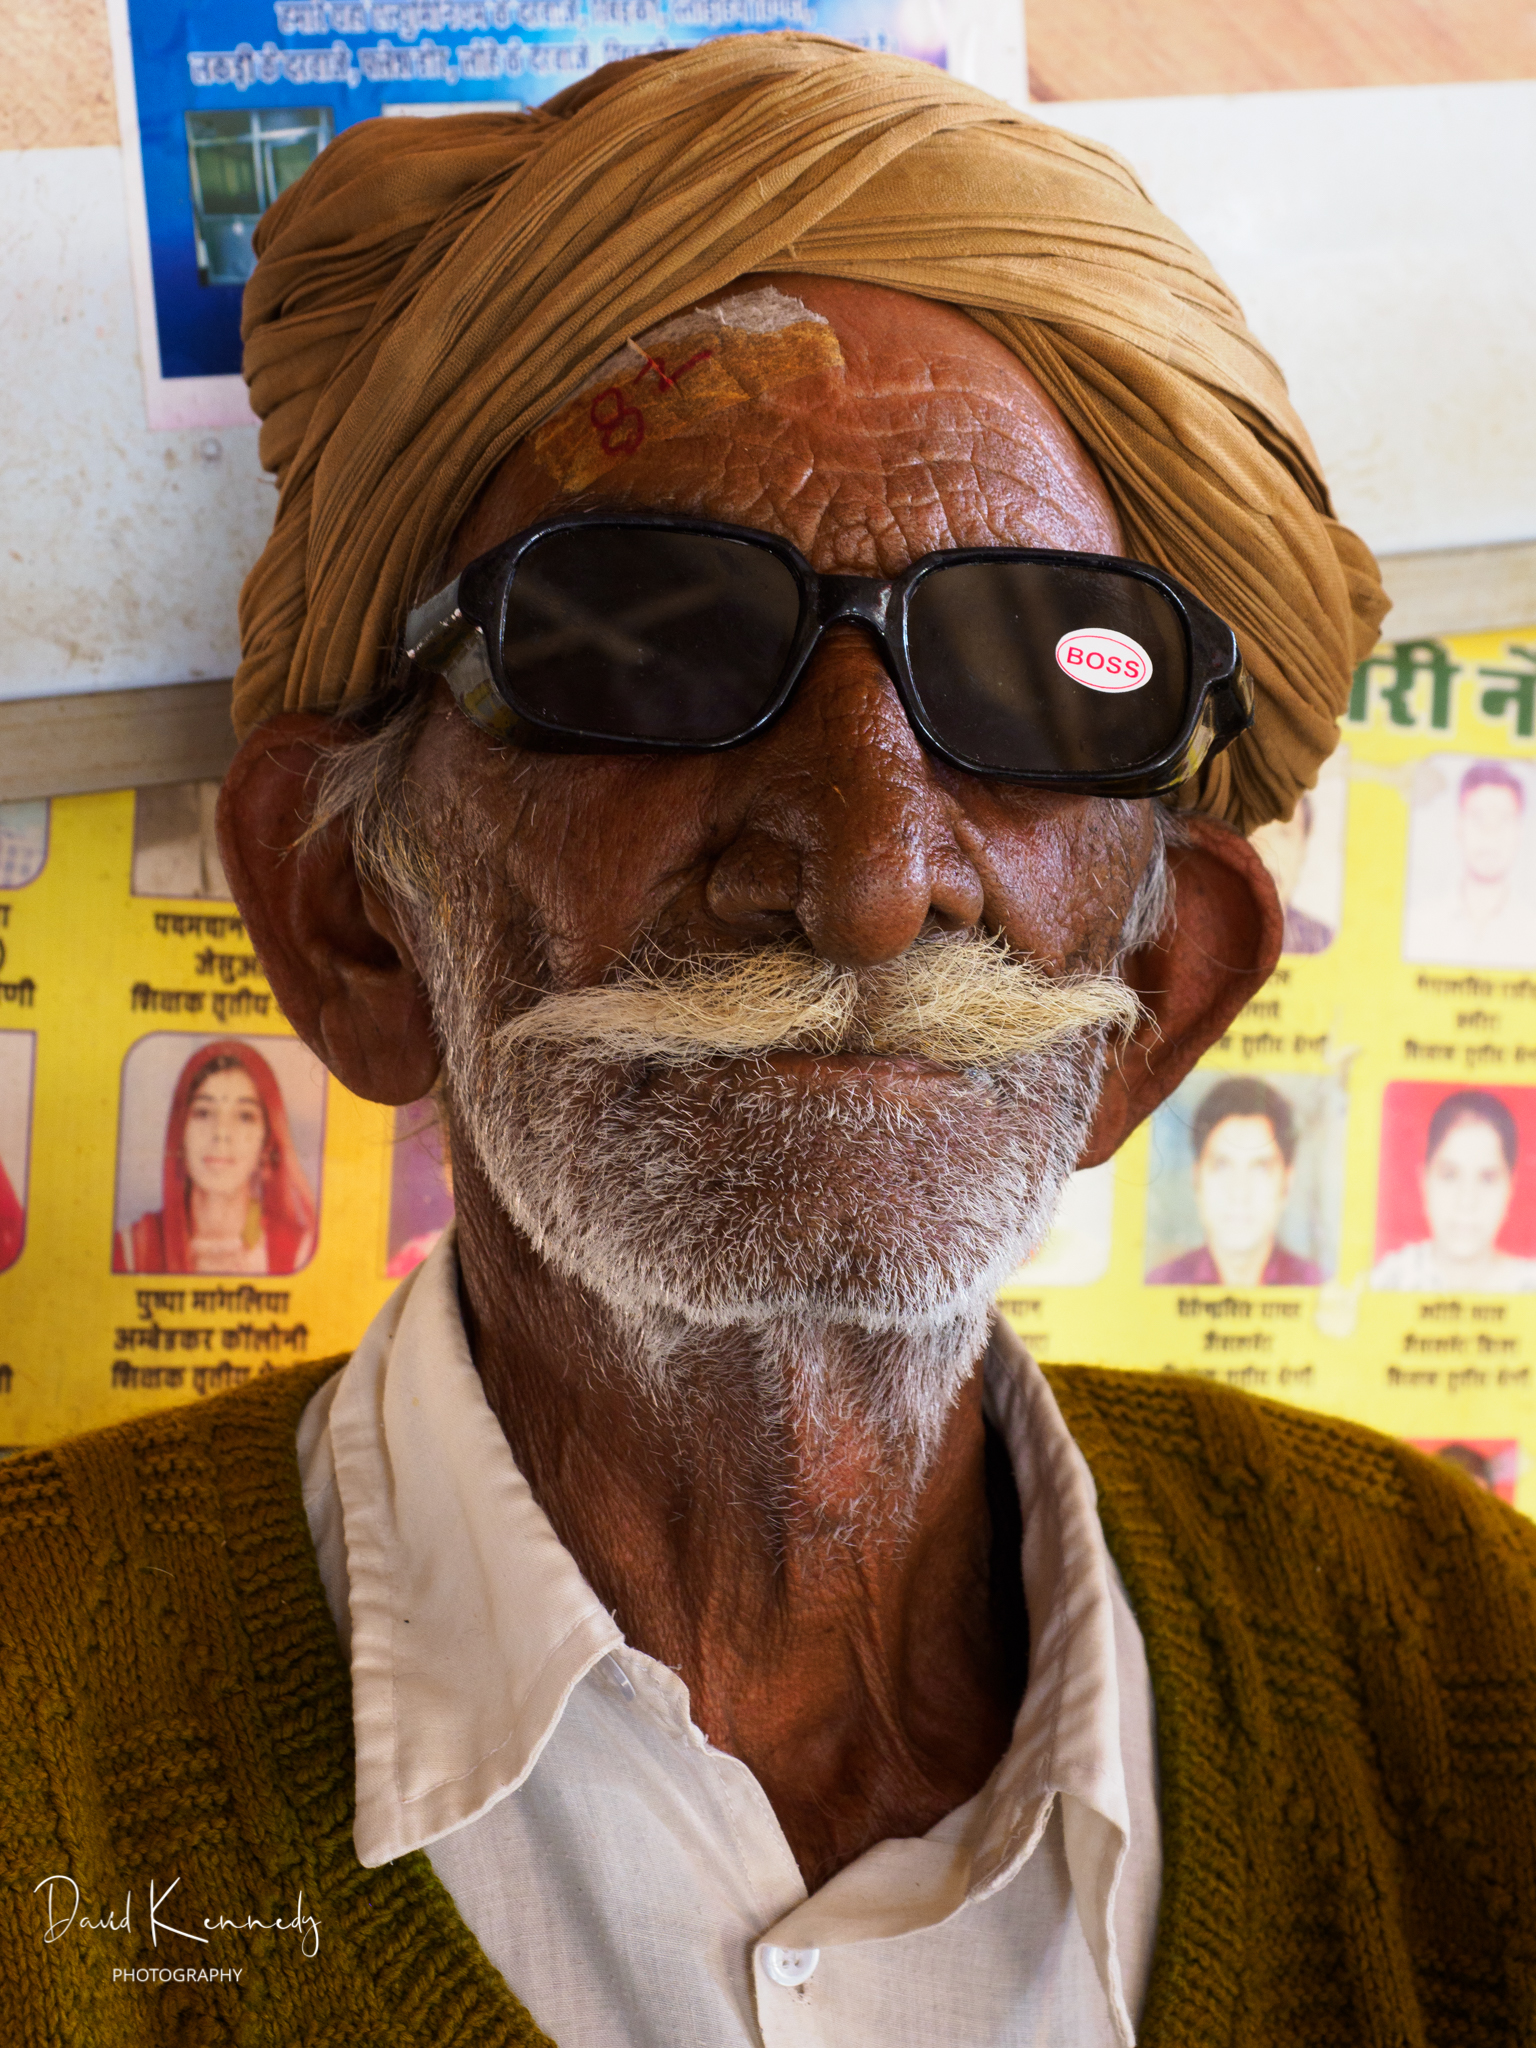 Man in turban with sunglasses after cataract surgery in India